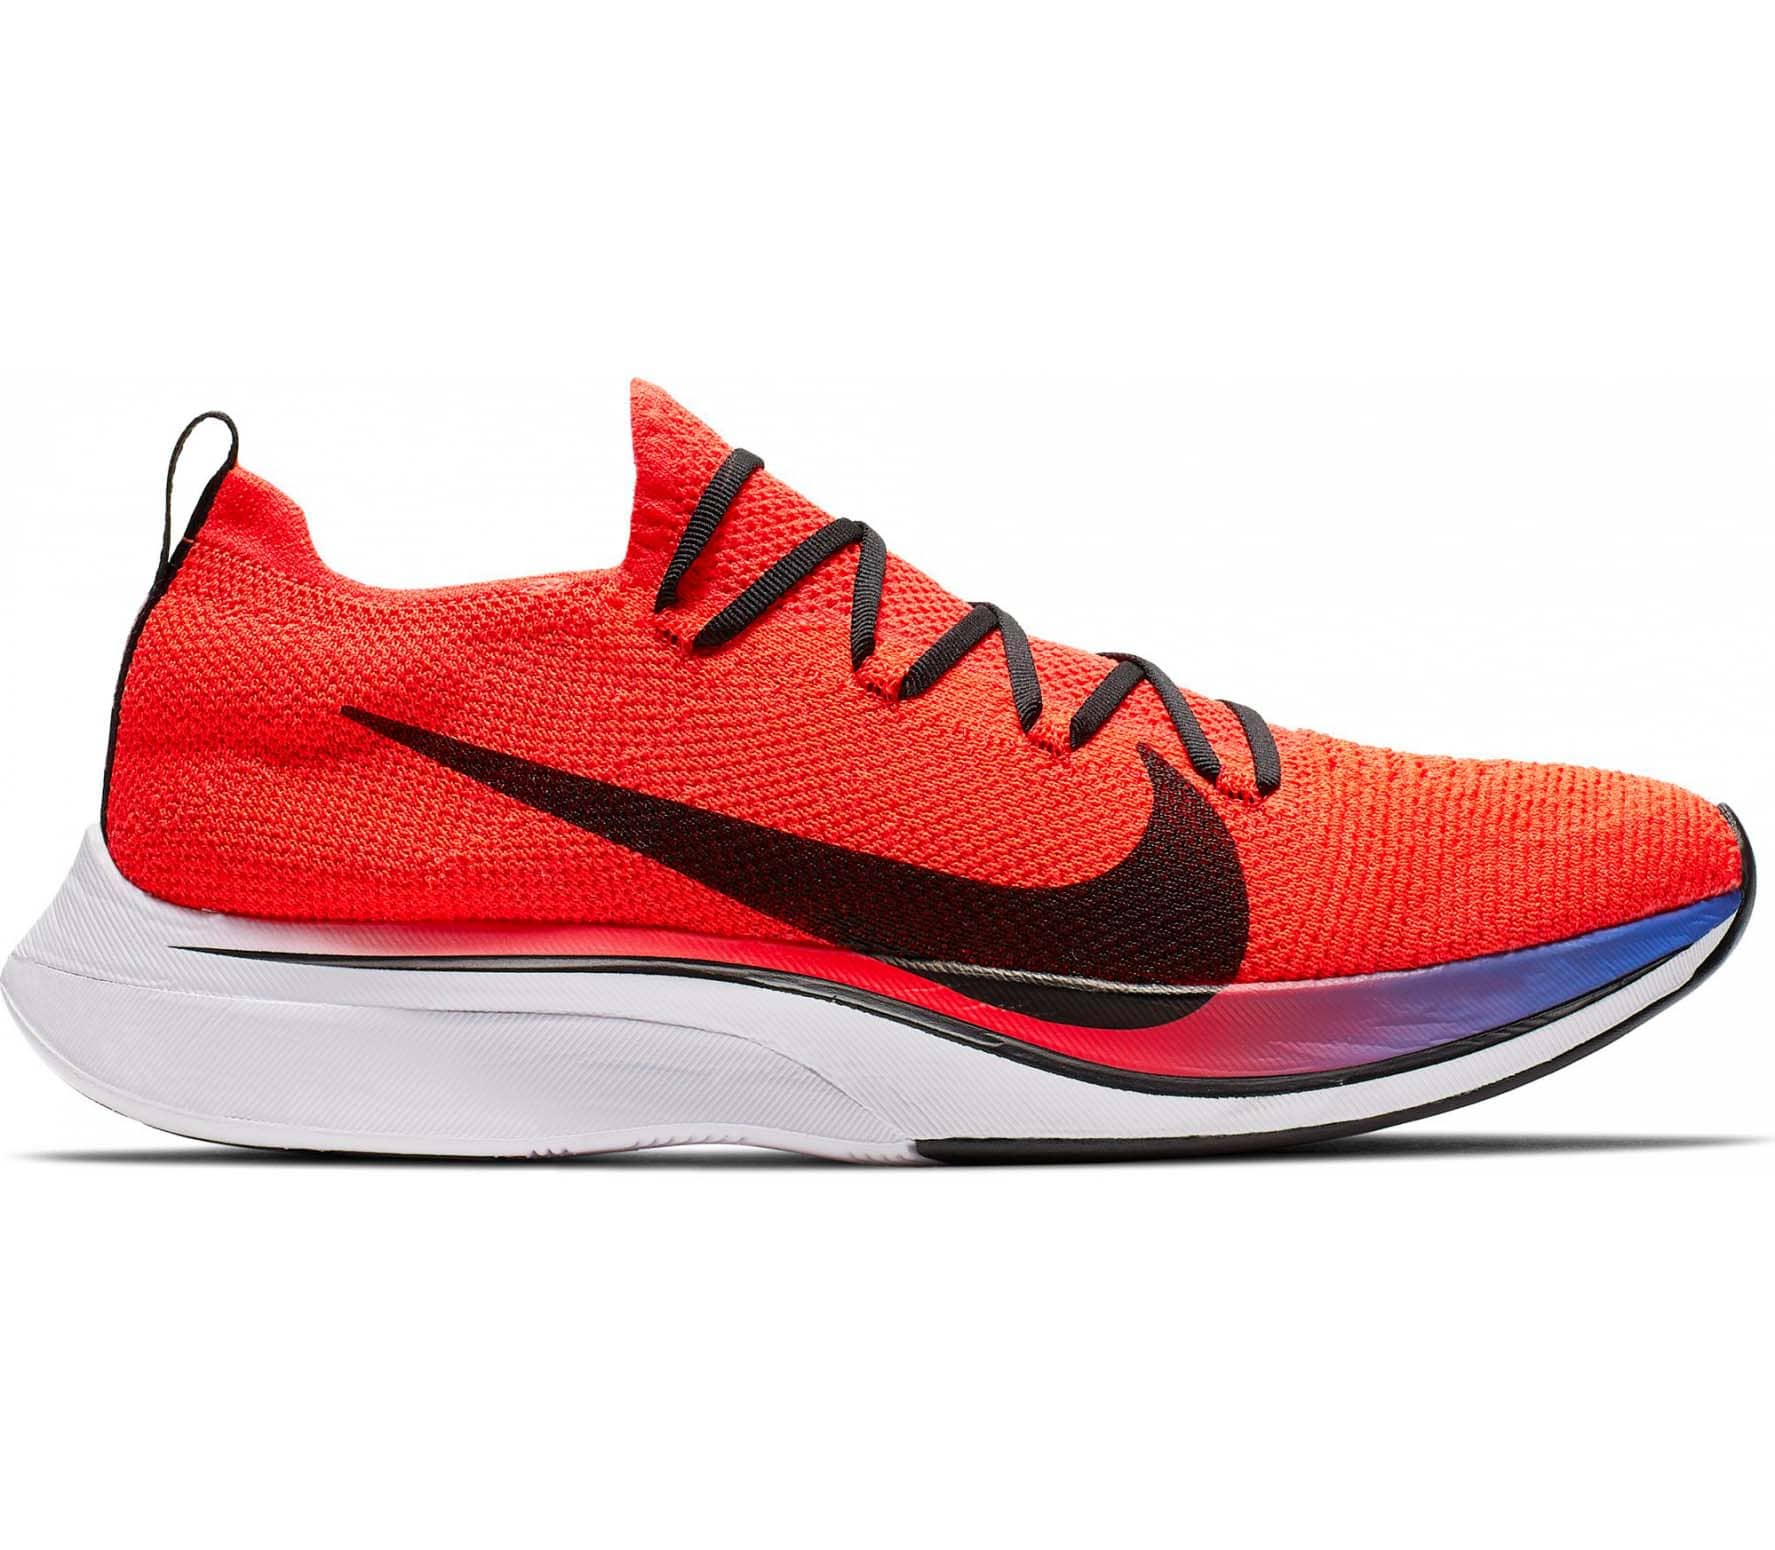 Nike Vaporfly 4% Flyknit Unisex Chaussures running  rouge